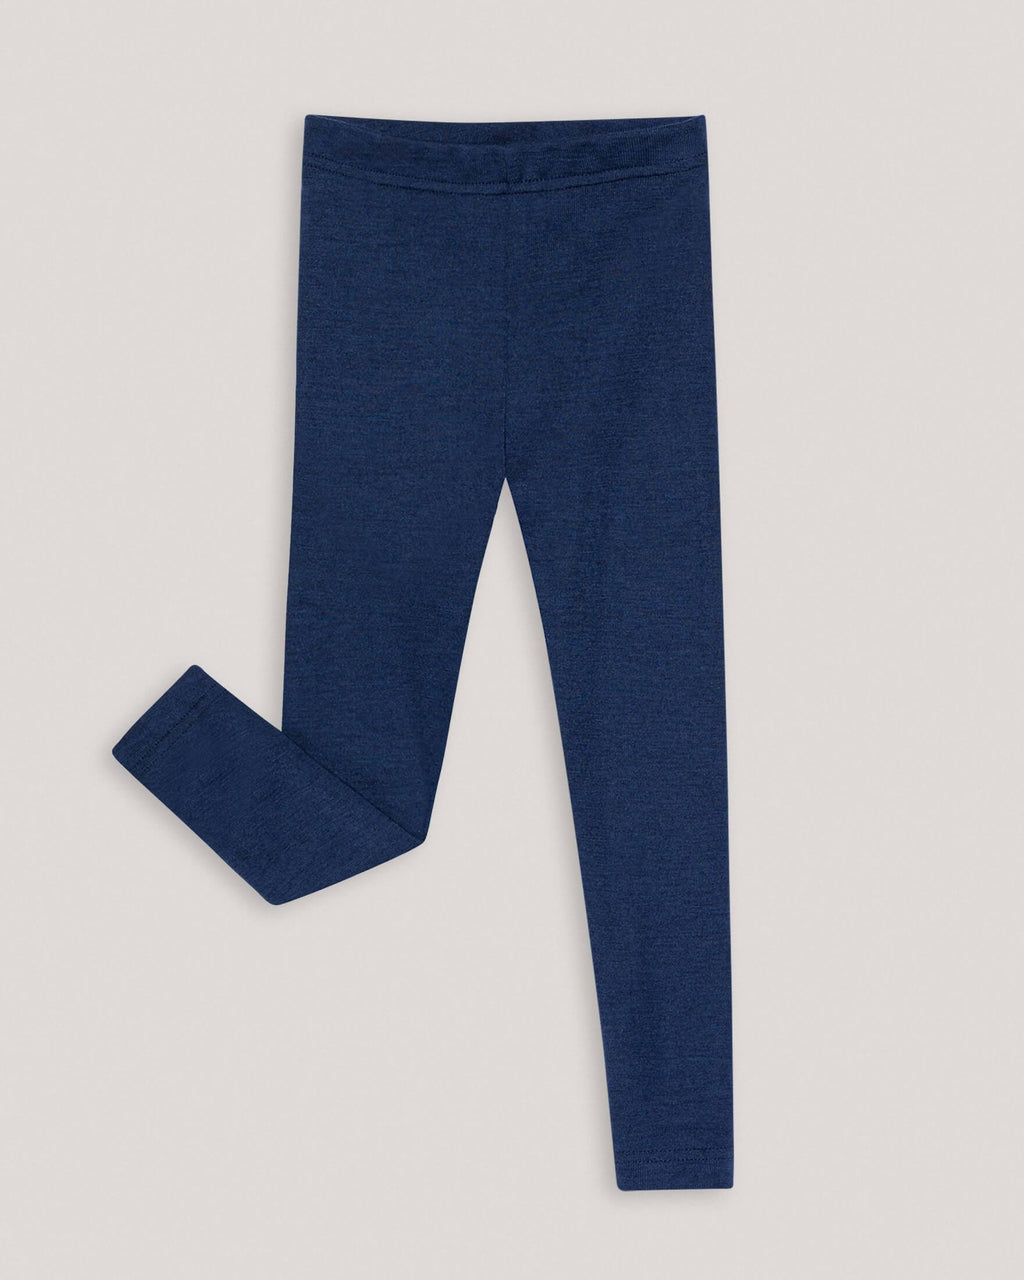 variant_2 | EN Navy Leggings Kids Multicolor ENGEL | DE Blaue Leggings Kinder Bunt ENGEL